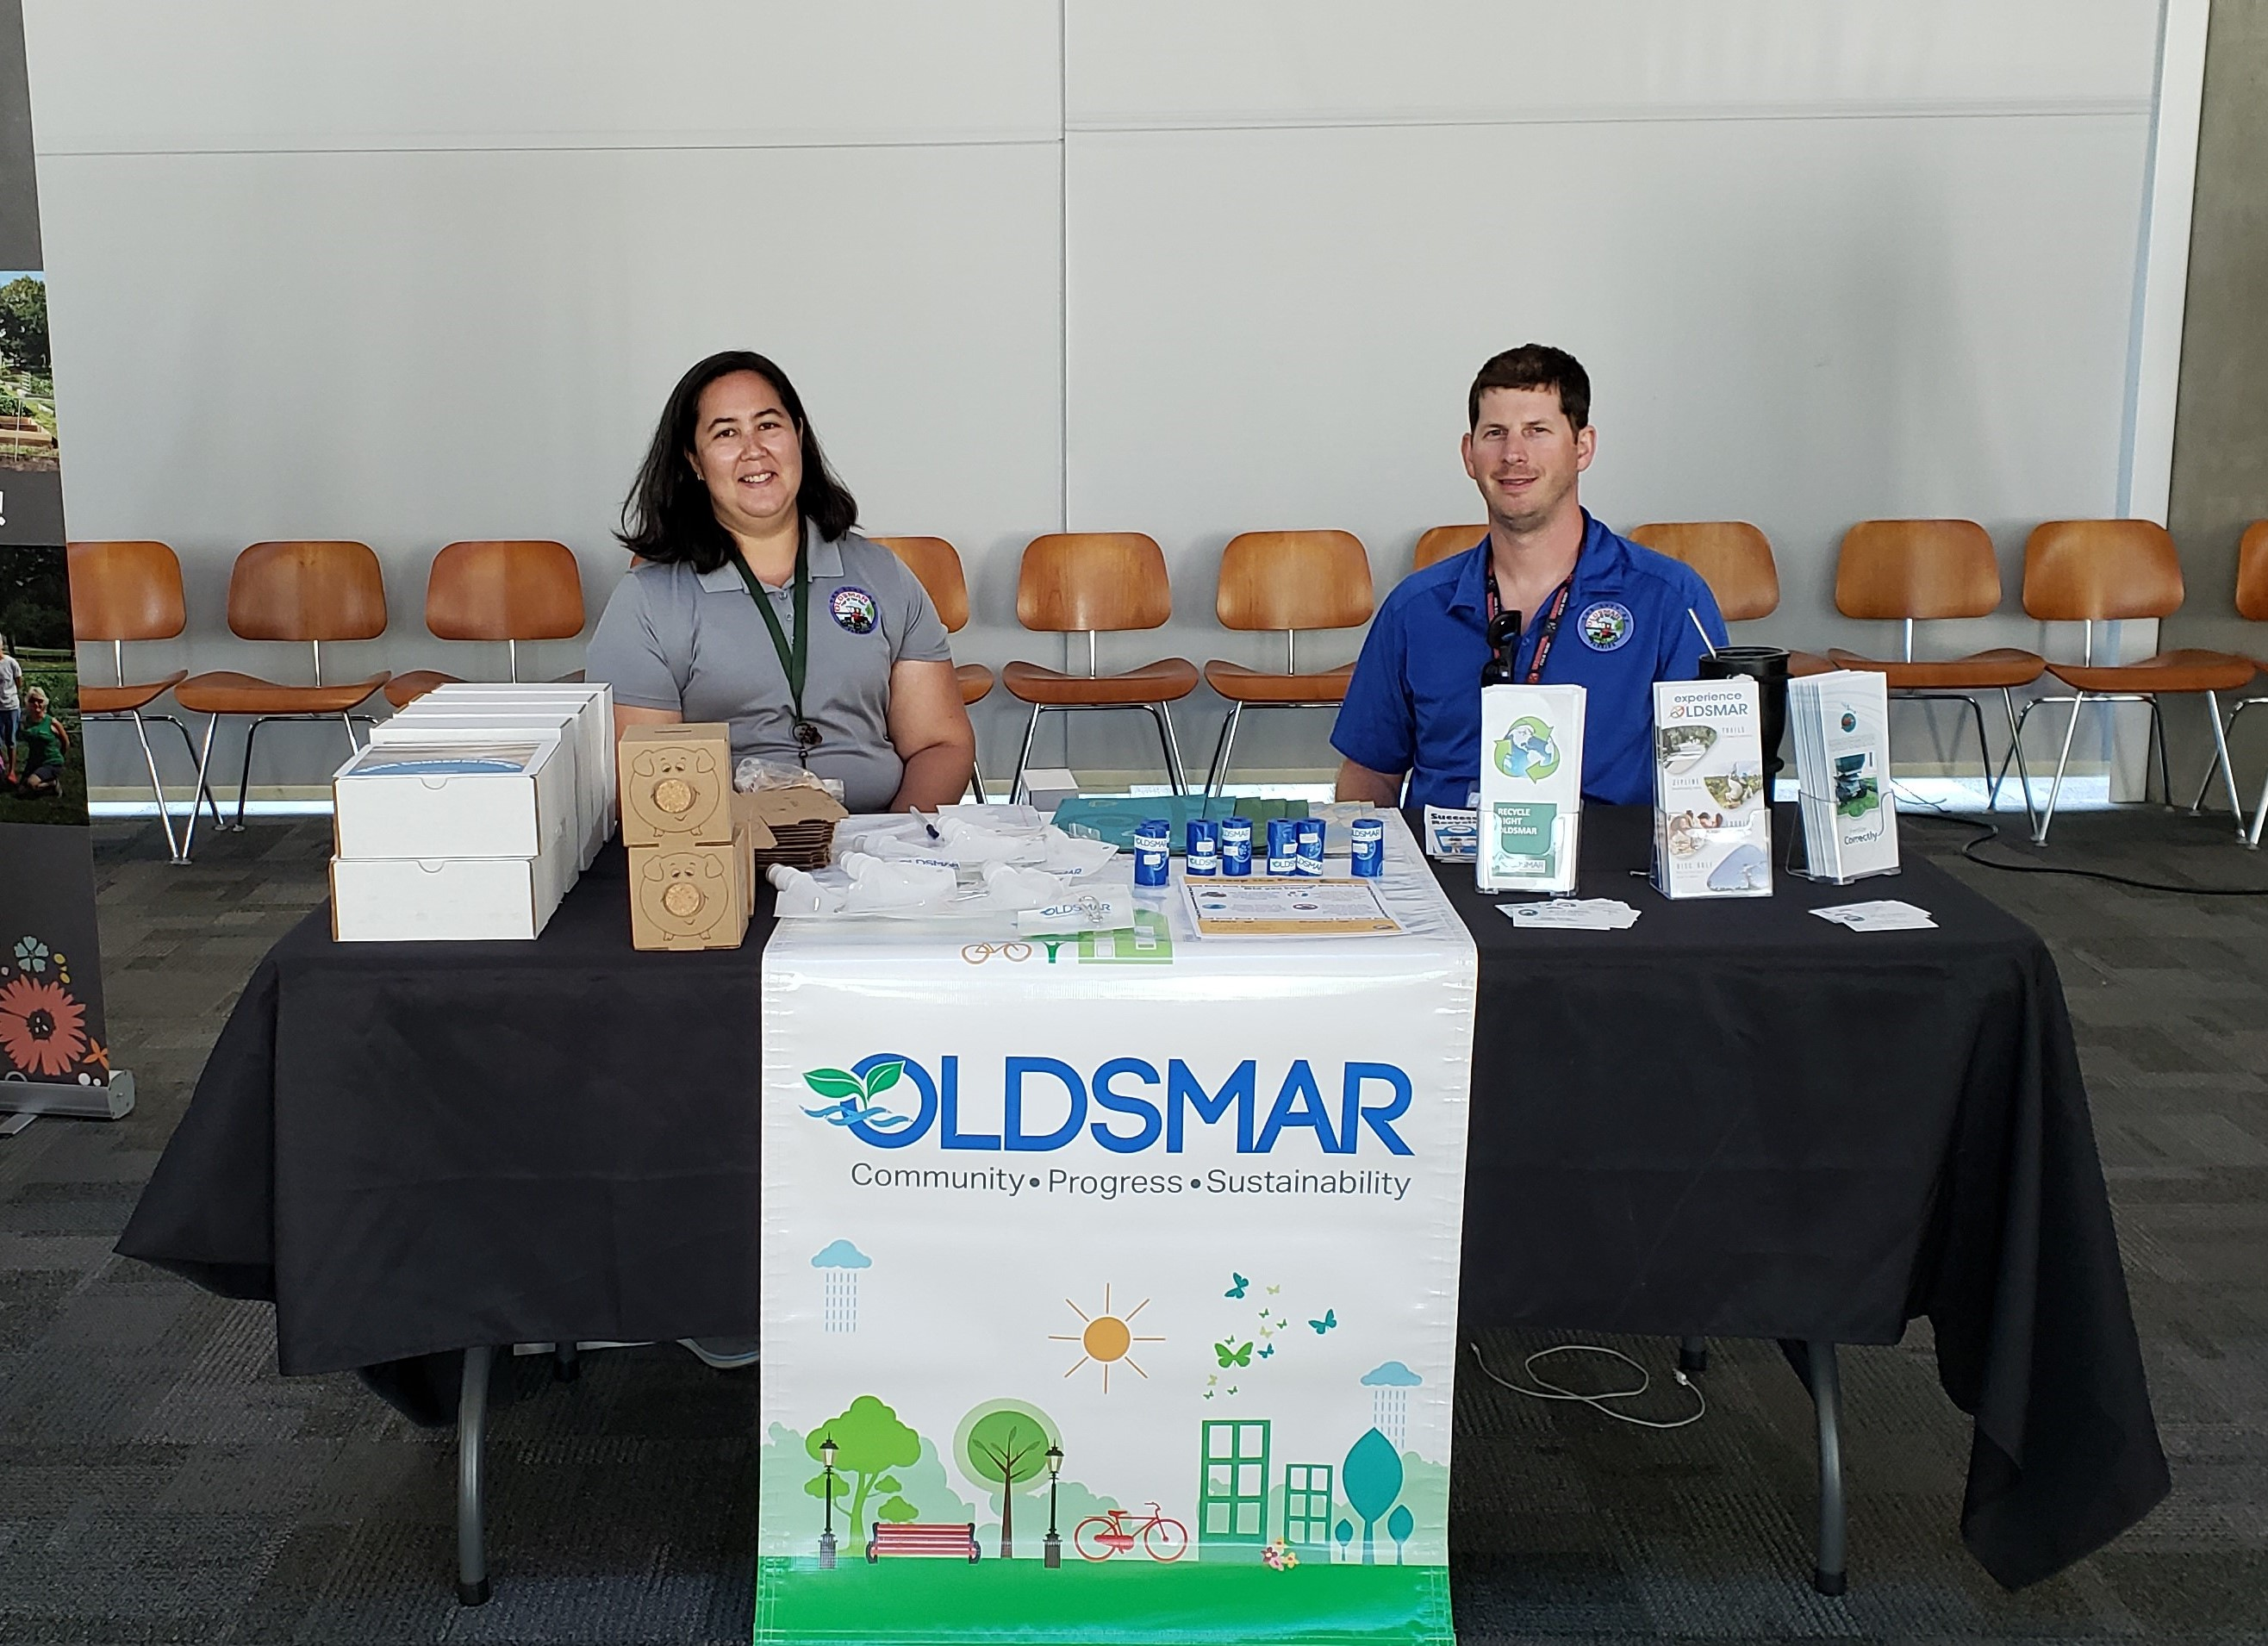 Sustainable Oldsmar table at the Nielsen Earth Day Event